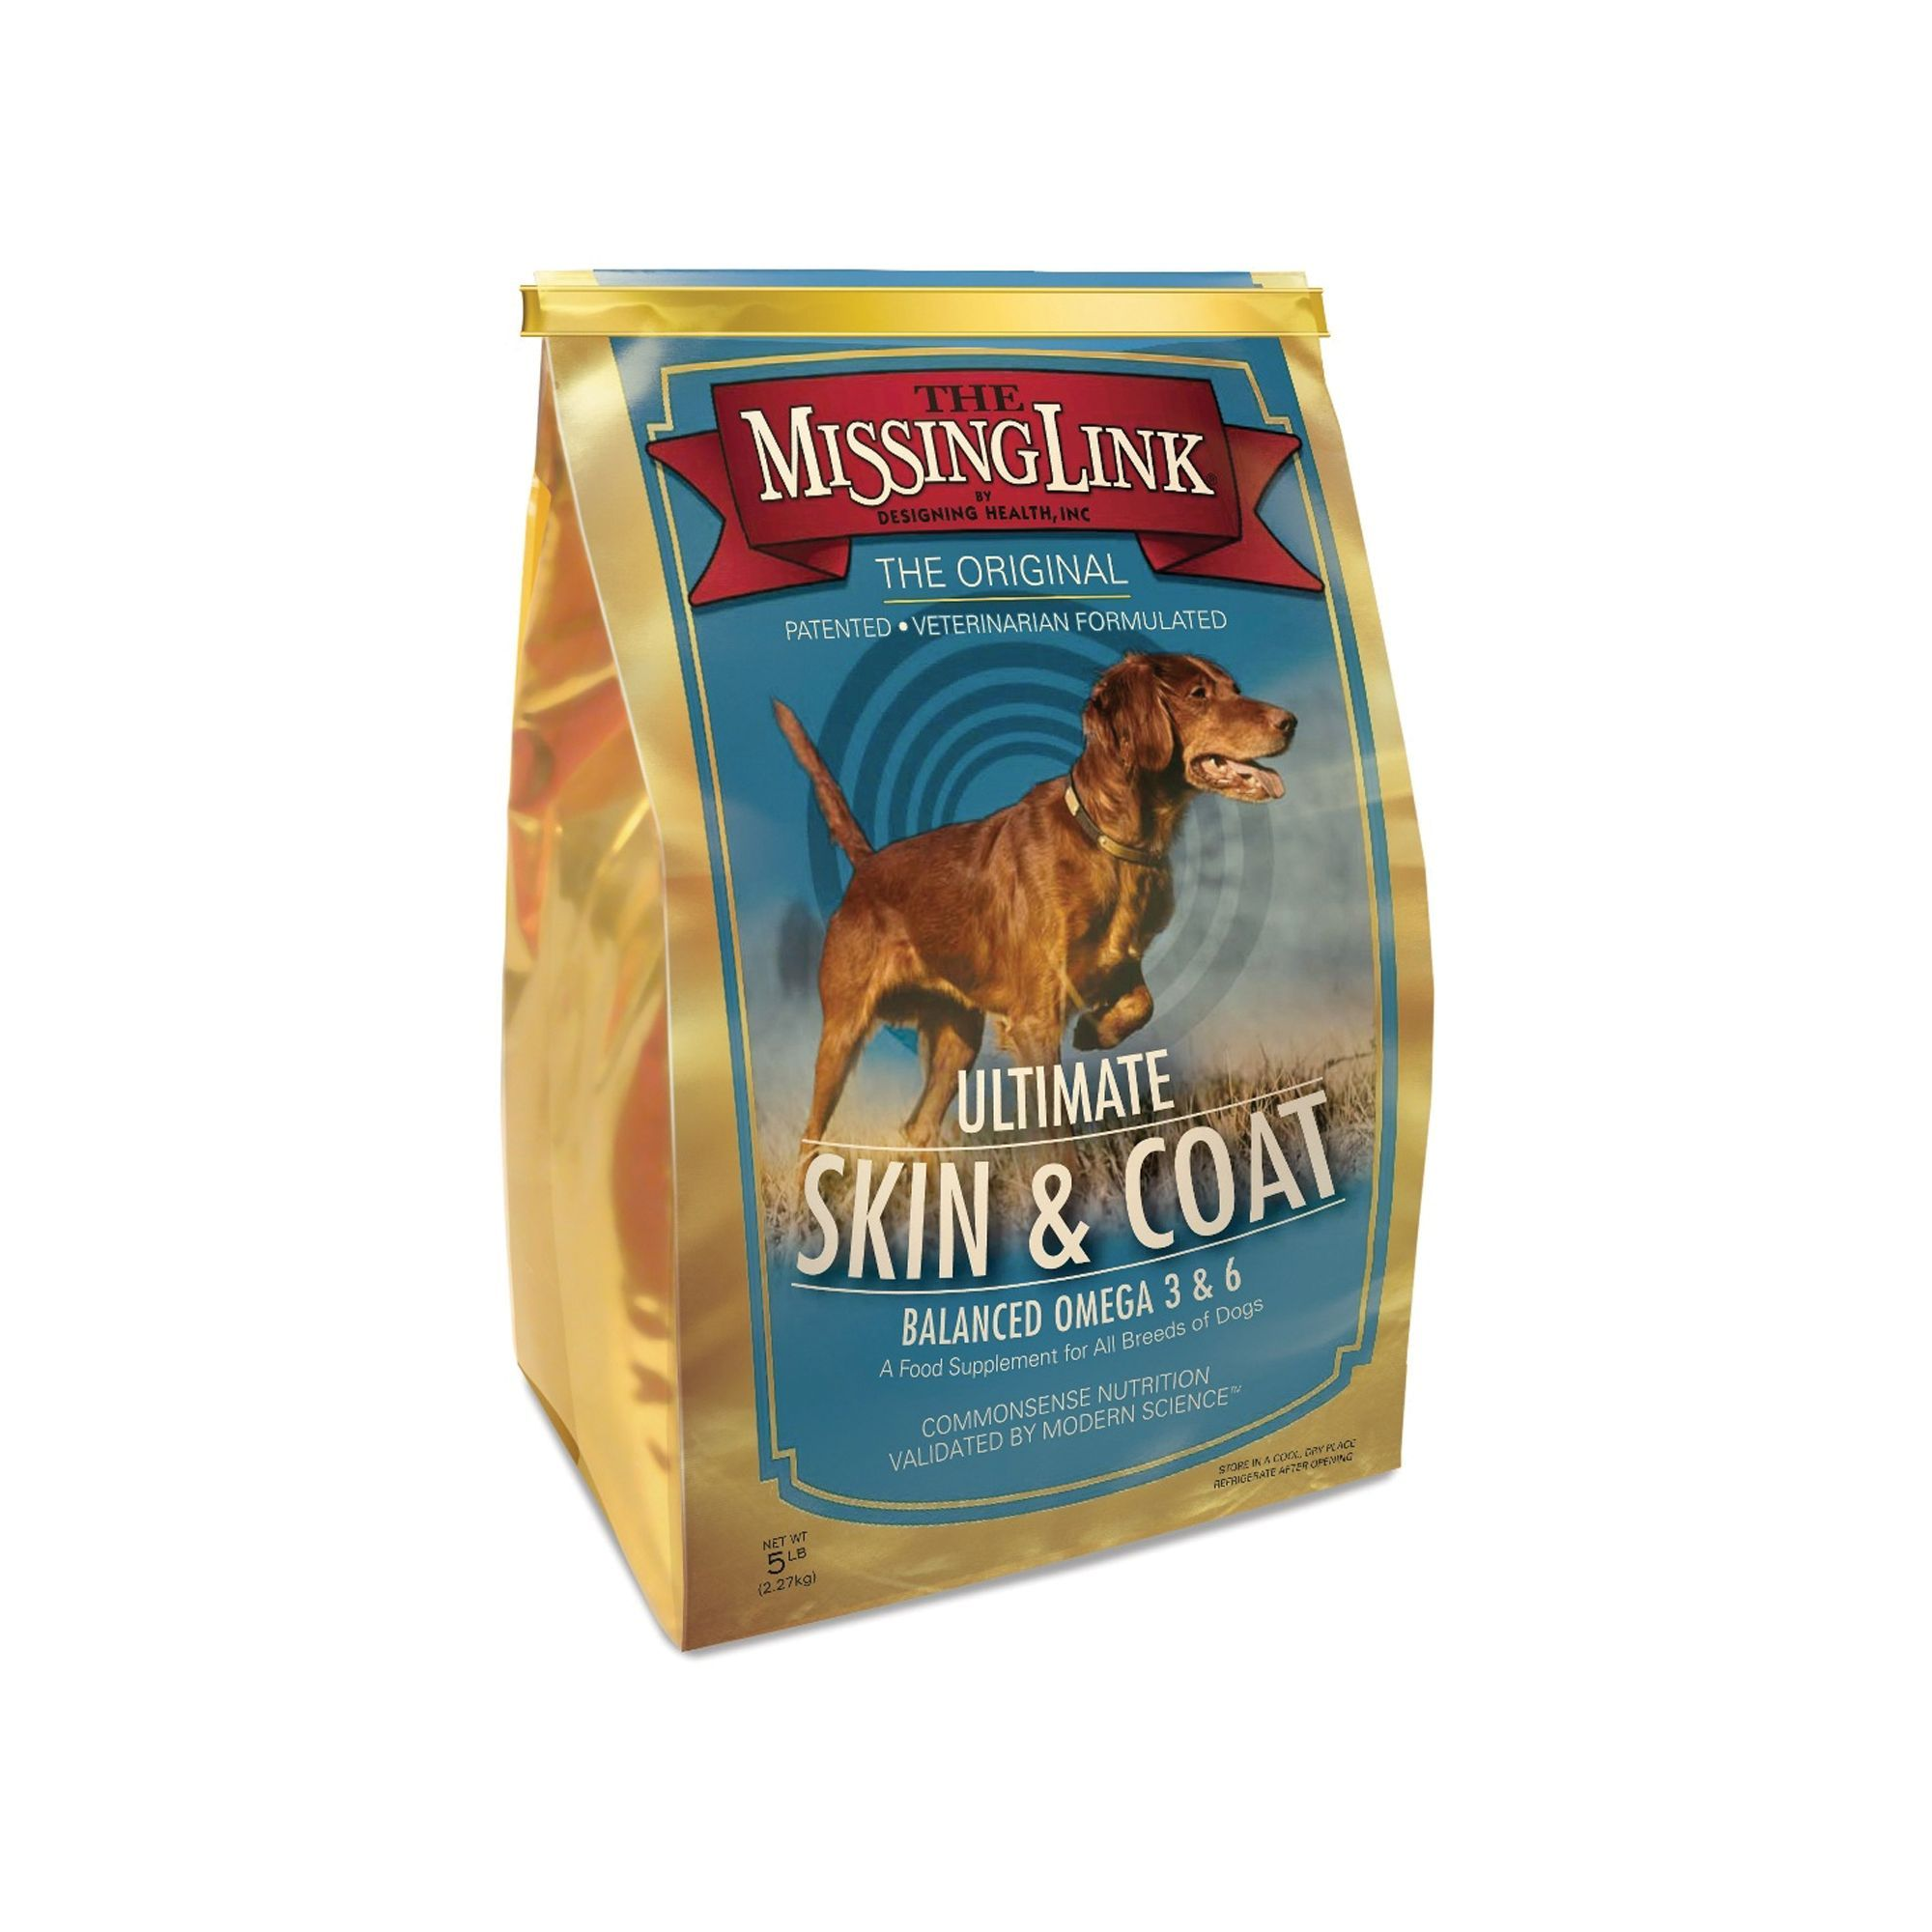 The Missing Link Original Skin Coat Dog Supplement Dog Supplements Cooking Classes For Kids Coconut Oil For Dogs